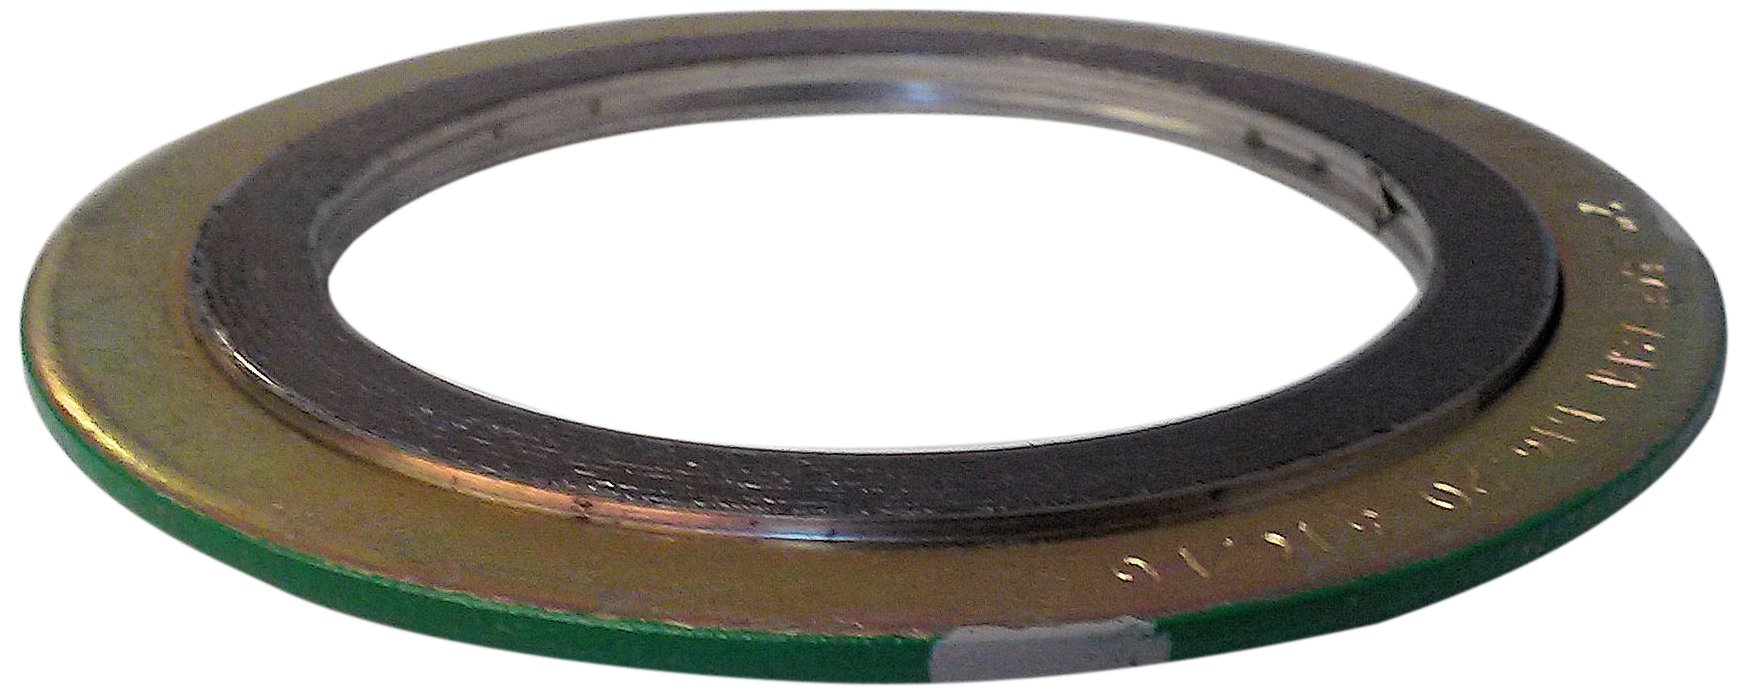 Sur-Seal, Inc. Teadit 90004316GR150 Green Band with Gray Stripe 316LSS/Graphite  Spiral Wound Gasket, -150 to 842 Degrees Fahrenheit Temperature Range, 5.00'' ID, 6.88'' OD, for 4'' Pipe Size